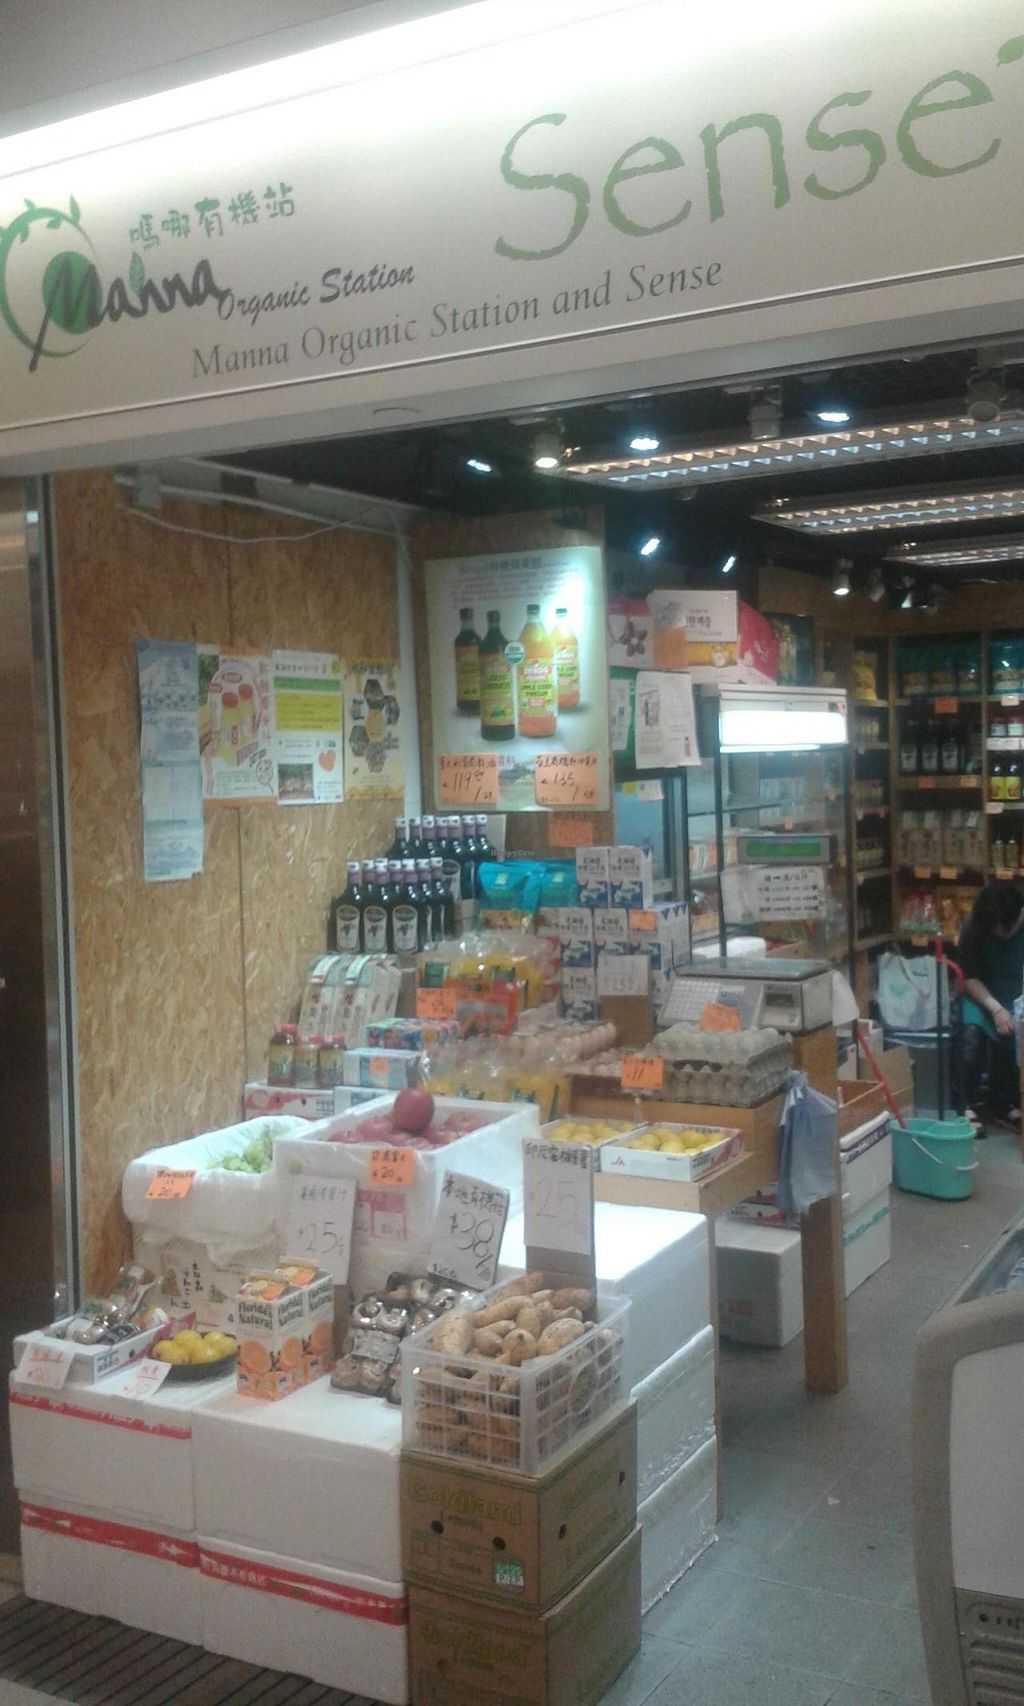 """Photo of Manna Organic Station and Sense - Lok Fu  by <a href=""""/members/profile/Stevie"""">Stevie</a> <br/>Shop front <br/> April 20, 2015  - <a href='/contact/abuse/image/57023/99765'>Report</a>"""